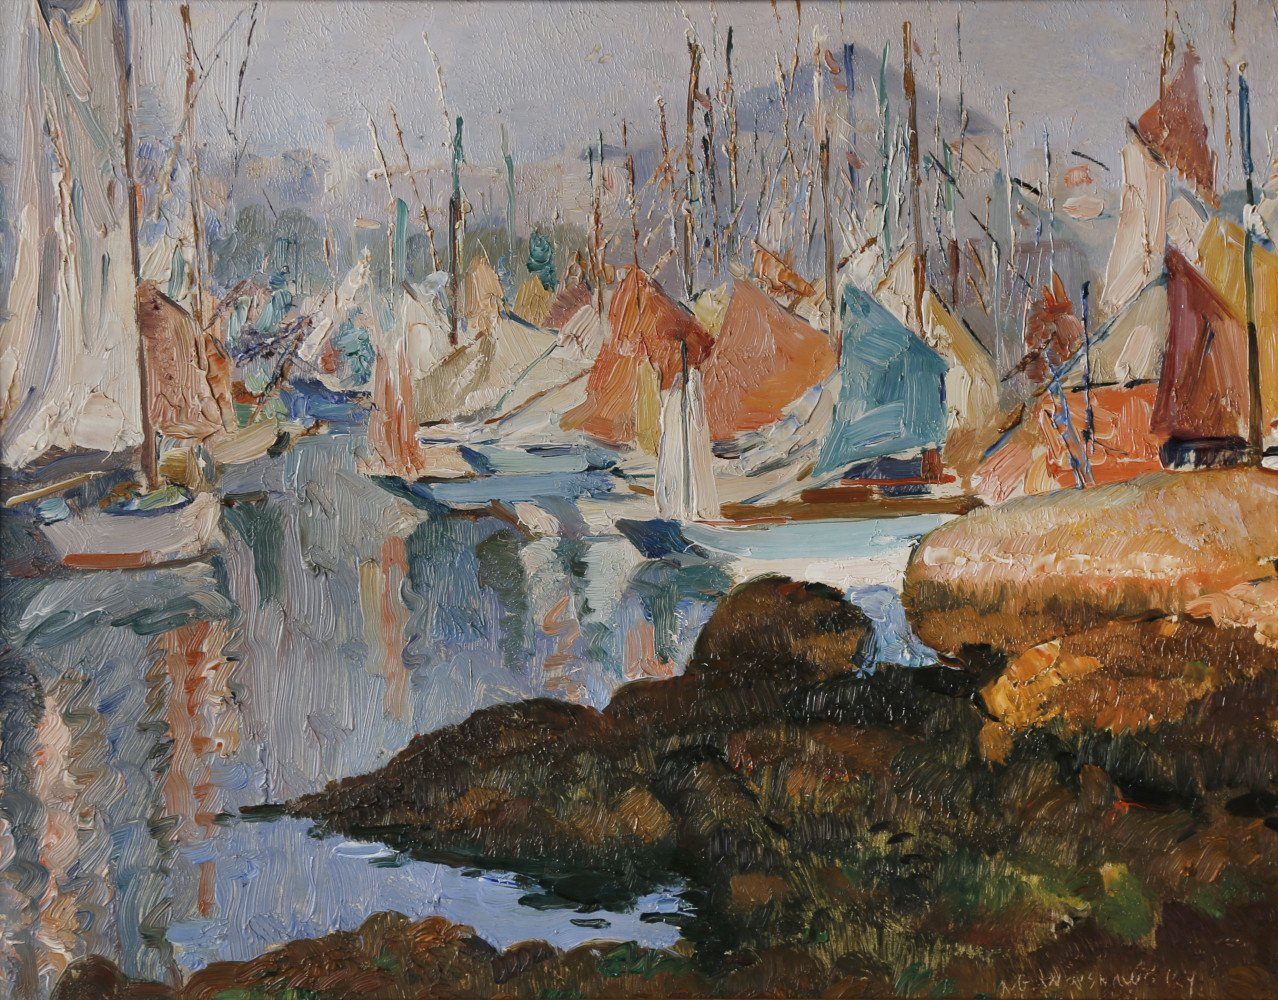 Harbor Scene by Abel G. Warshawsky